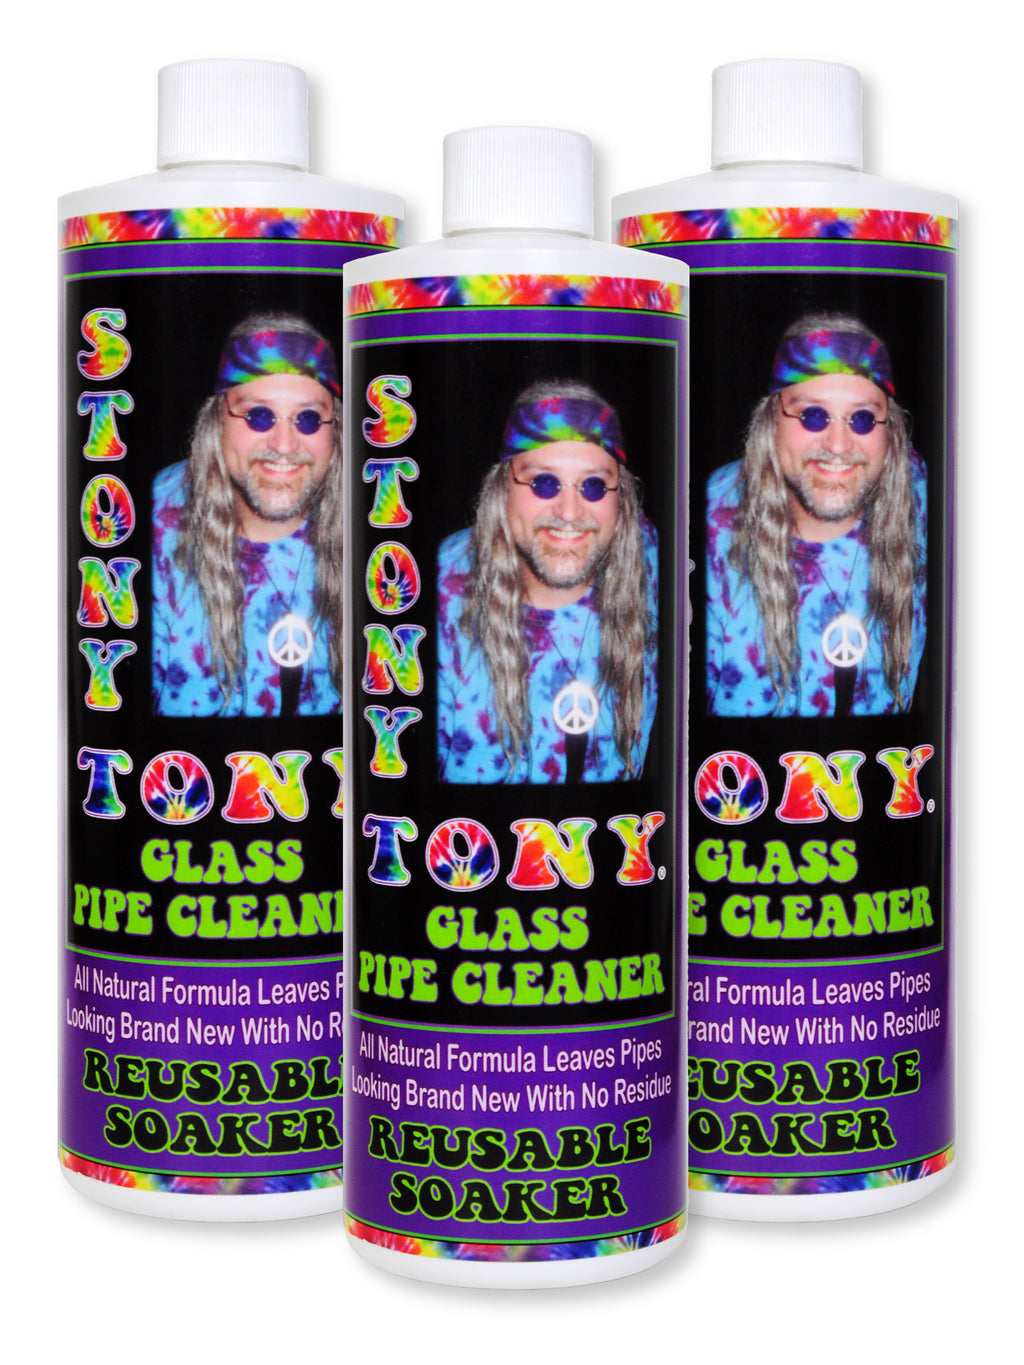 Stony Tony Glass Pipe Cleaner (3) 16oz